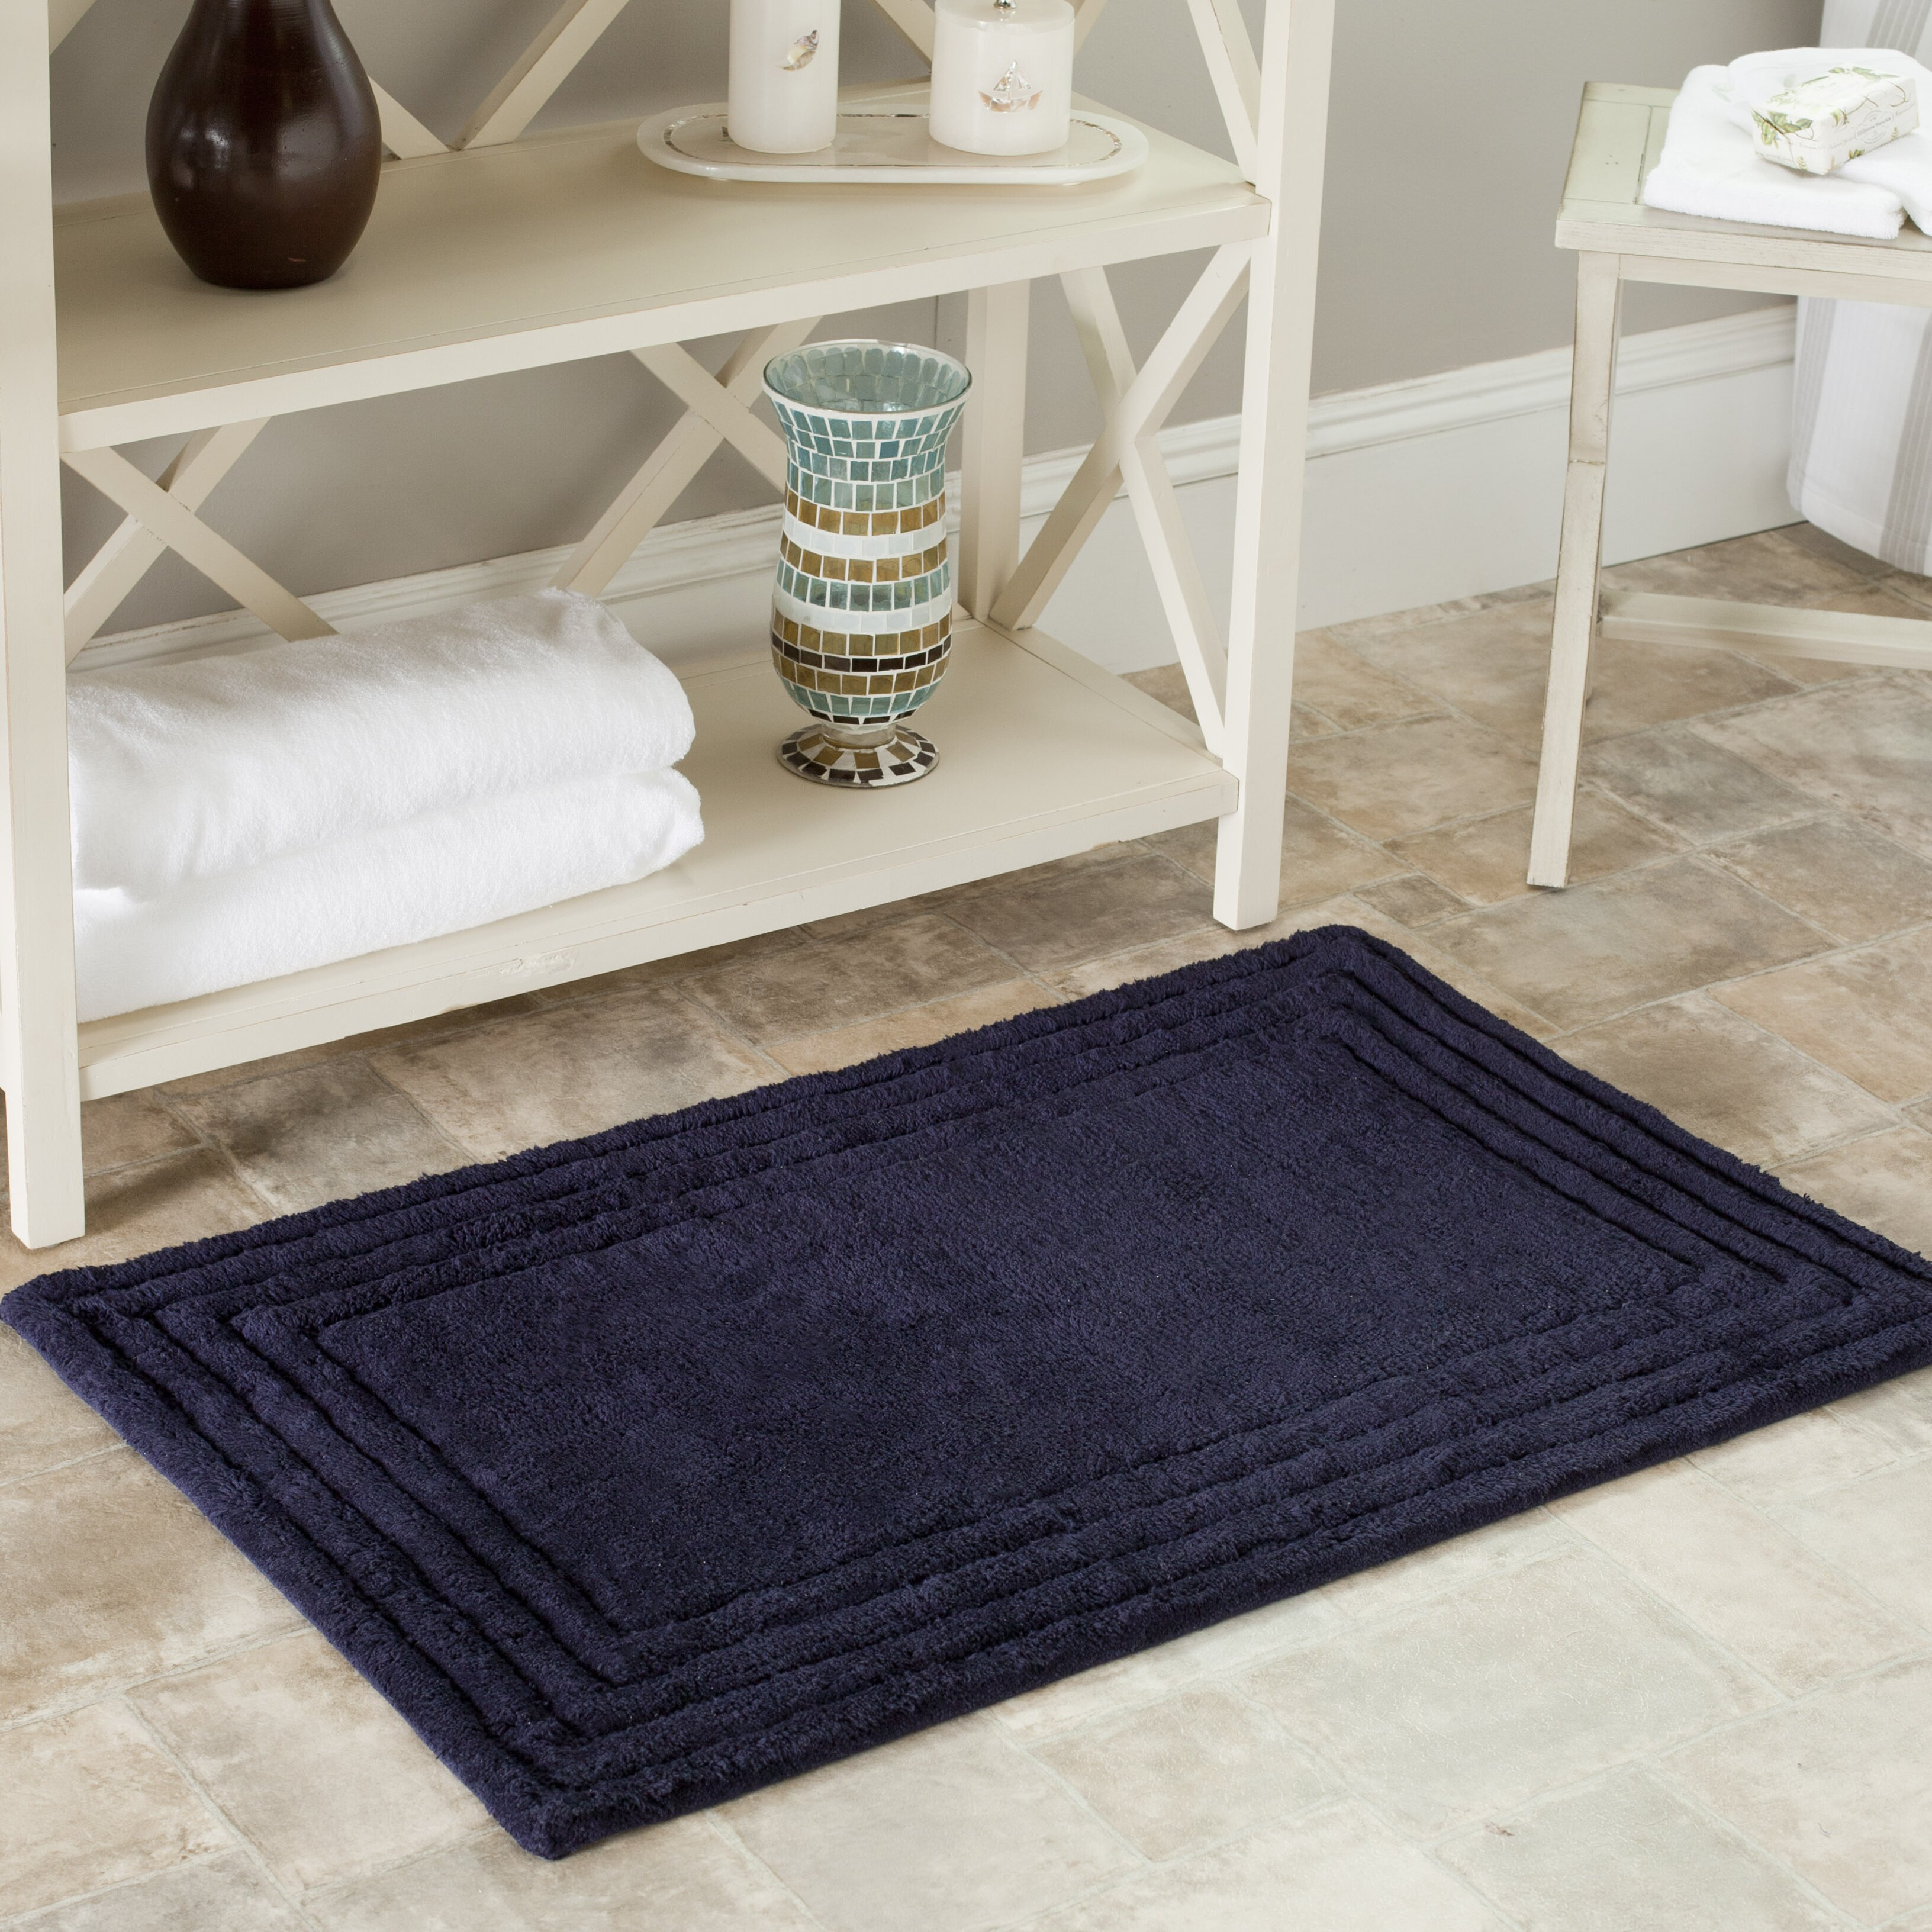 Plush Bathroom Rug Sets: Safavieh Plush Master Bath Rug II & Reviews